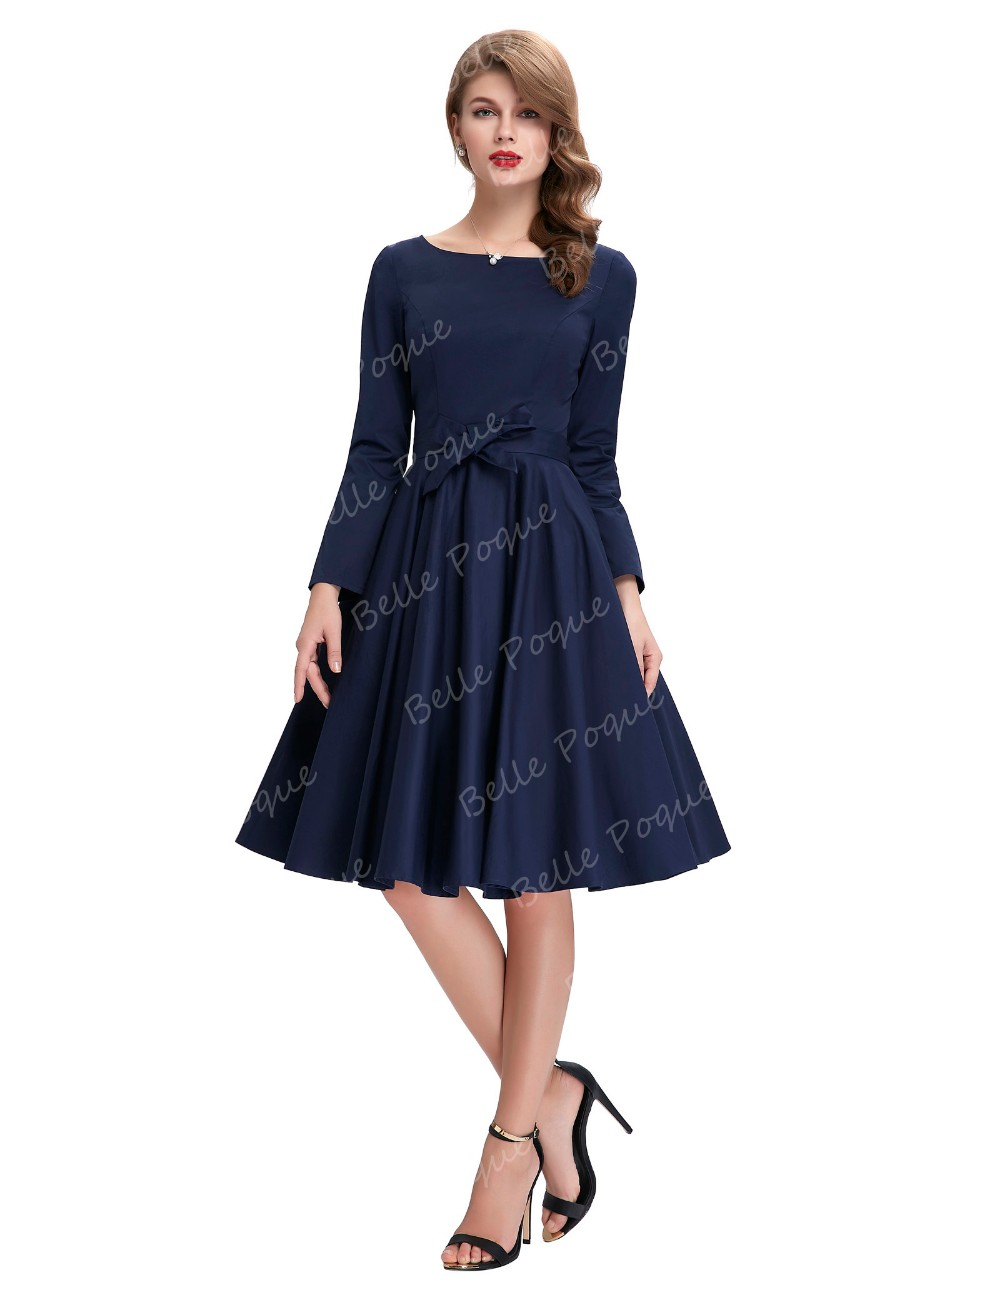 1744553c659da5 Belle Poque Stock Solid Color Long Sleeve Navy Blue casual vintage clothing  dress BP000192-2